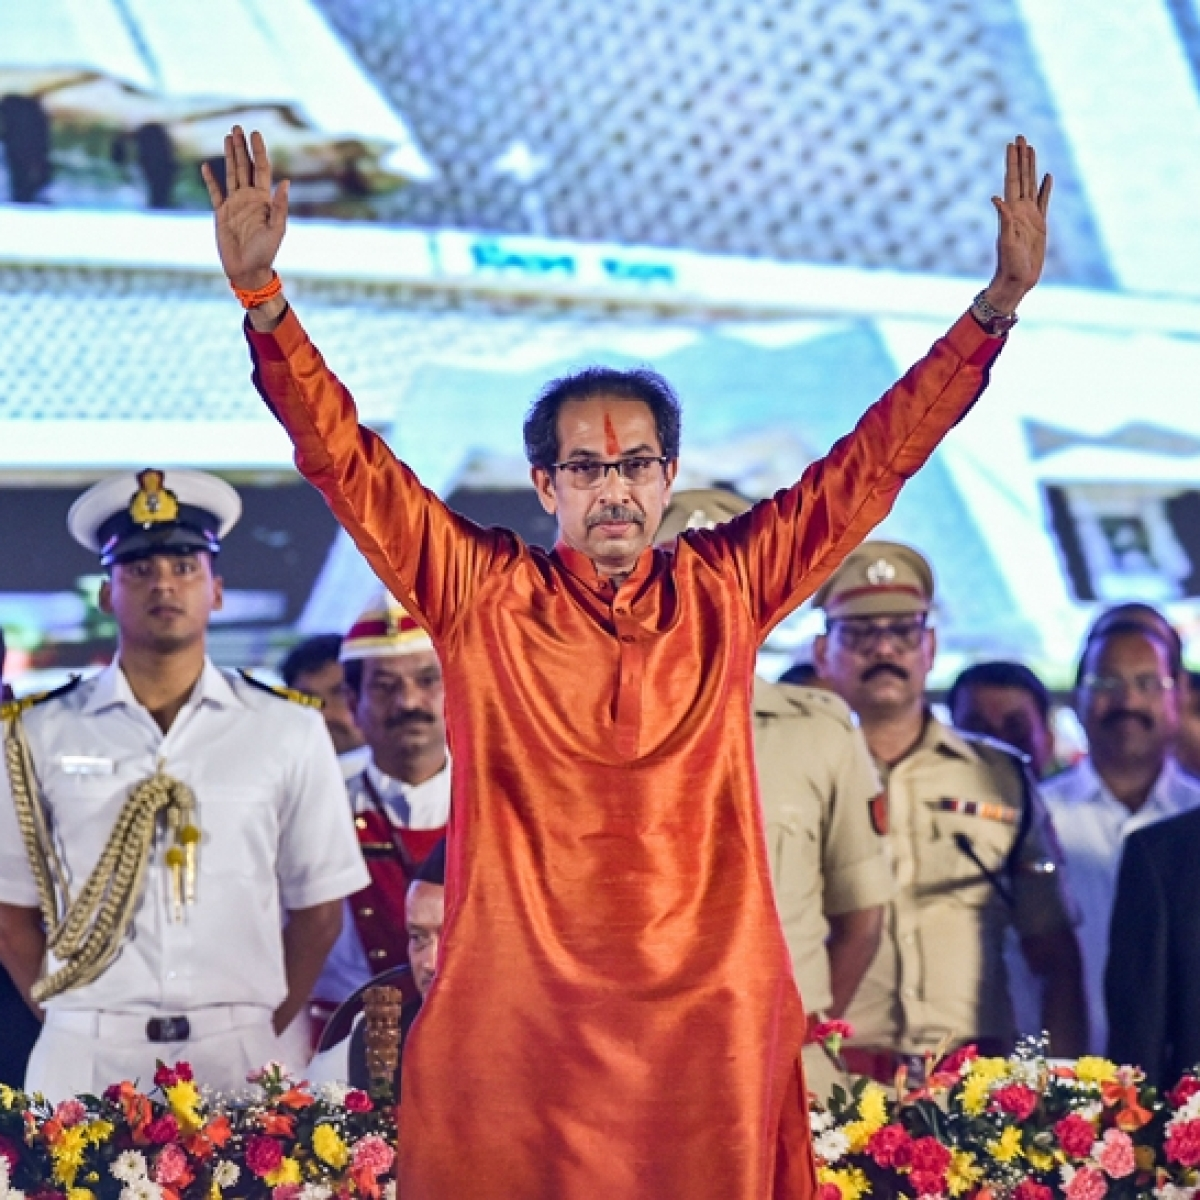 Attempt made to pressurise Shiv Sena when extended support to Pratibha Patil for country's President: Uddhav Thackeray